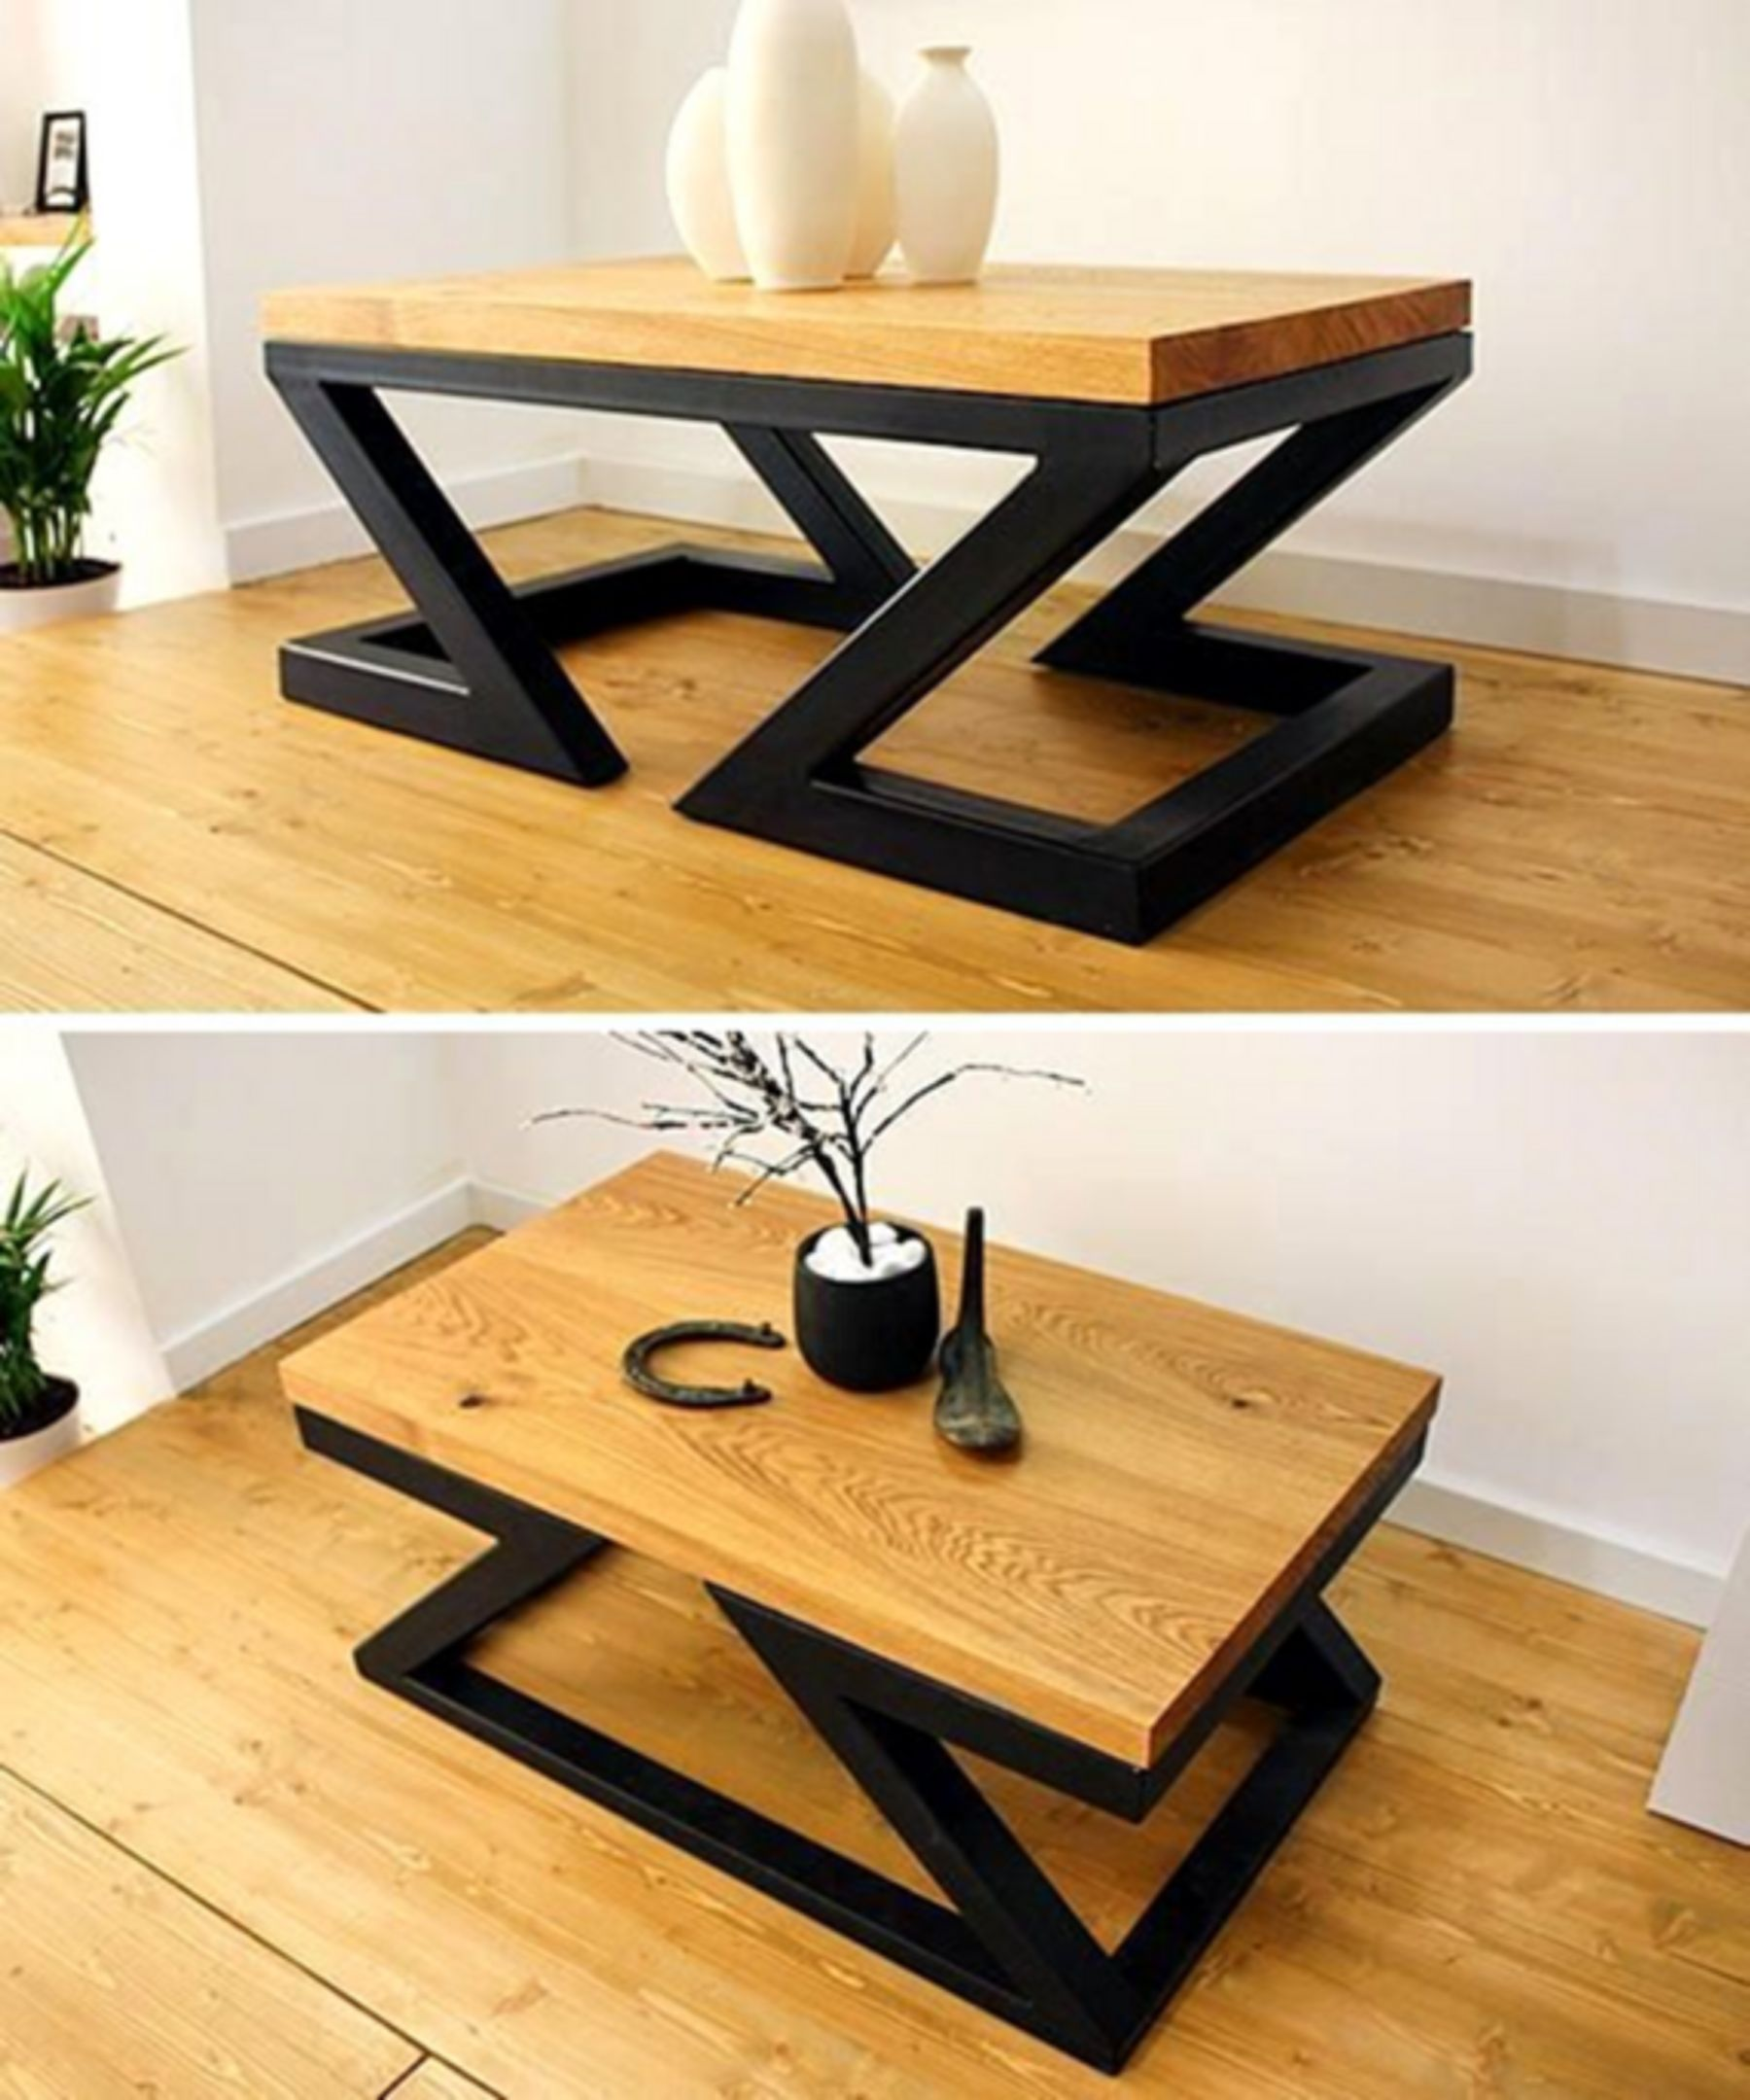 10 creative coffee table design ideas for your living